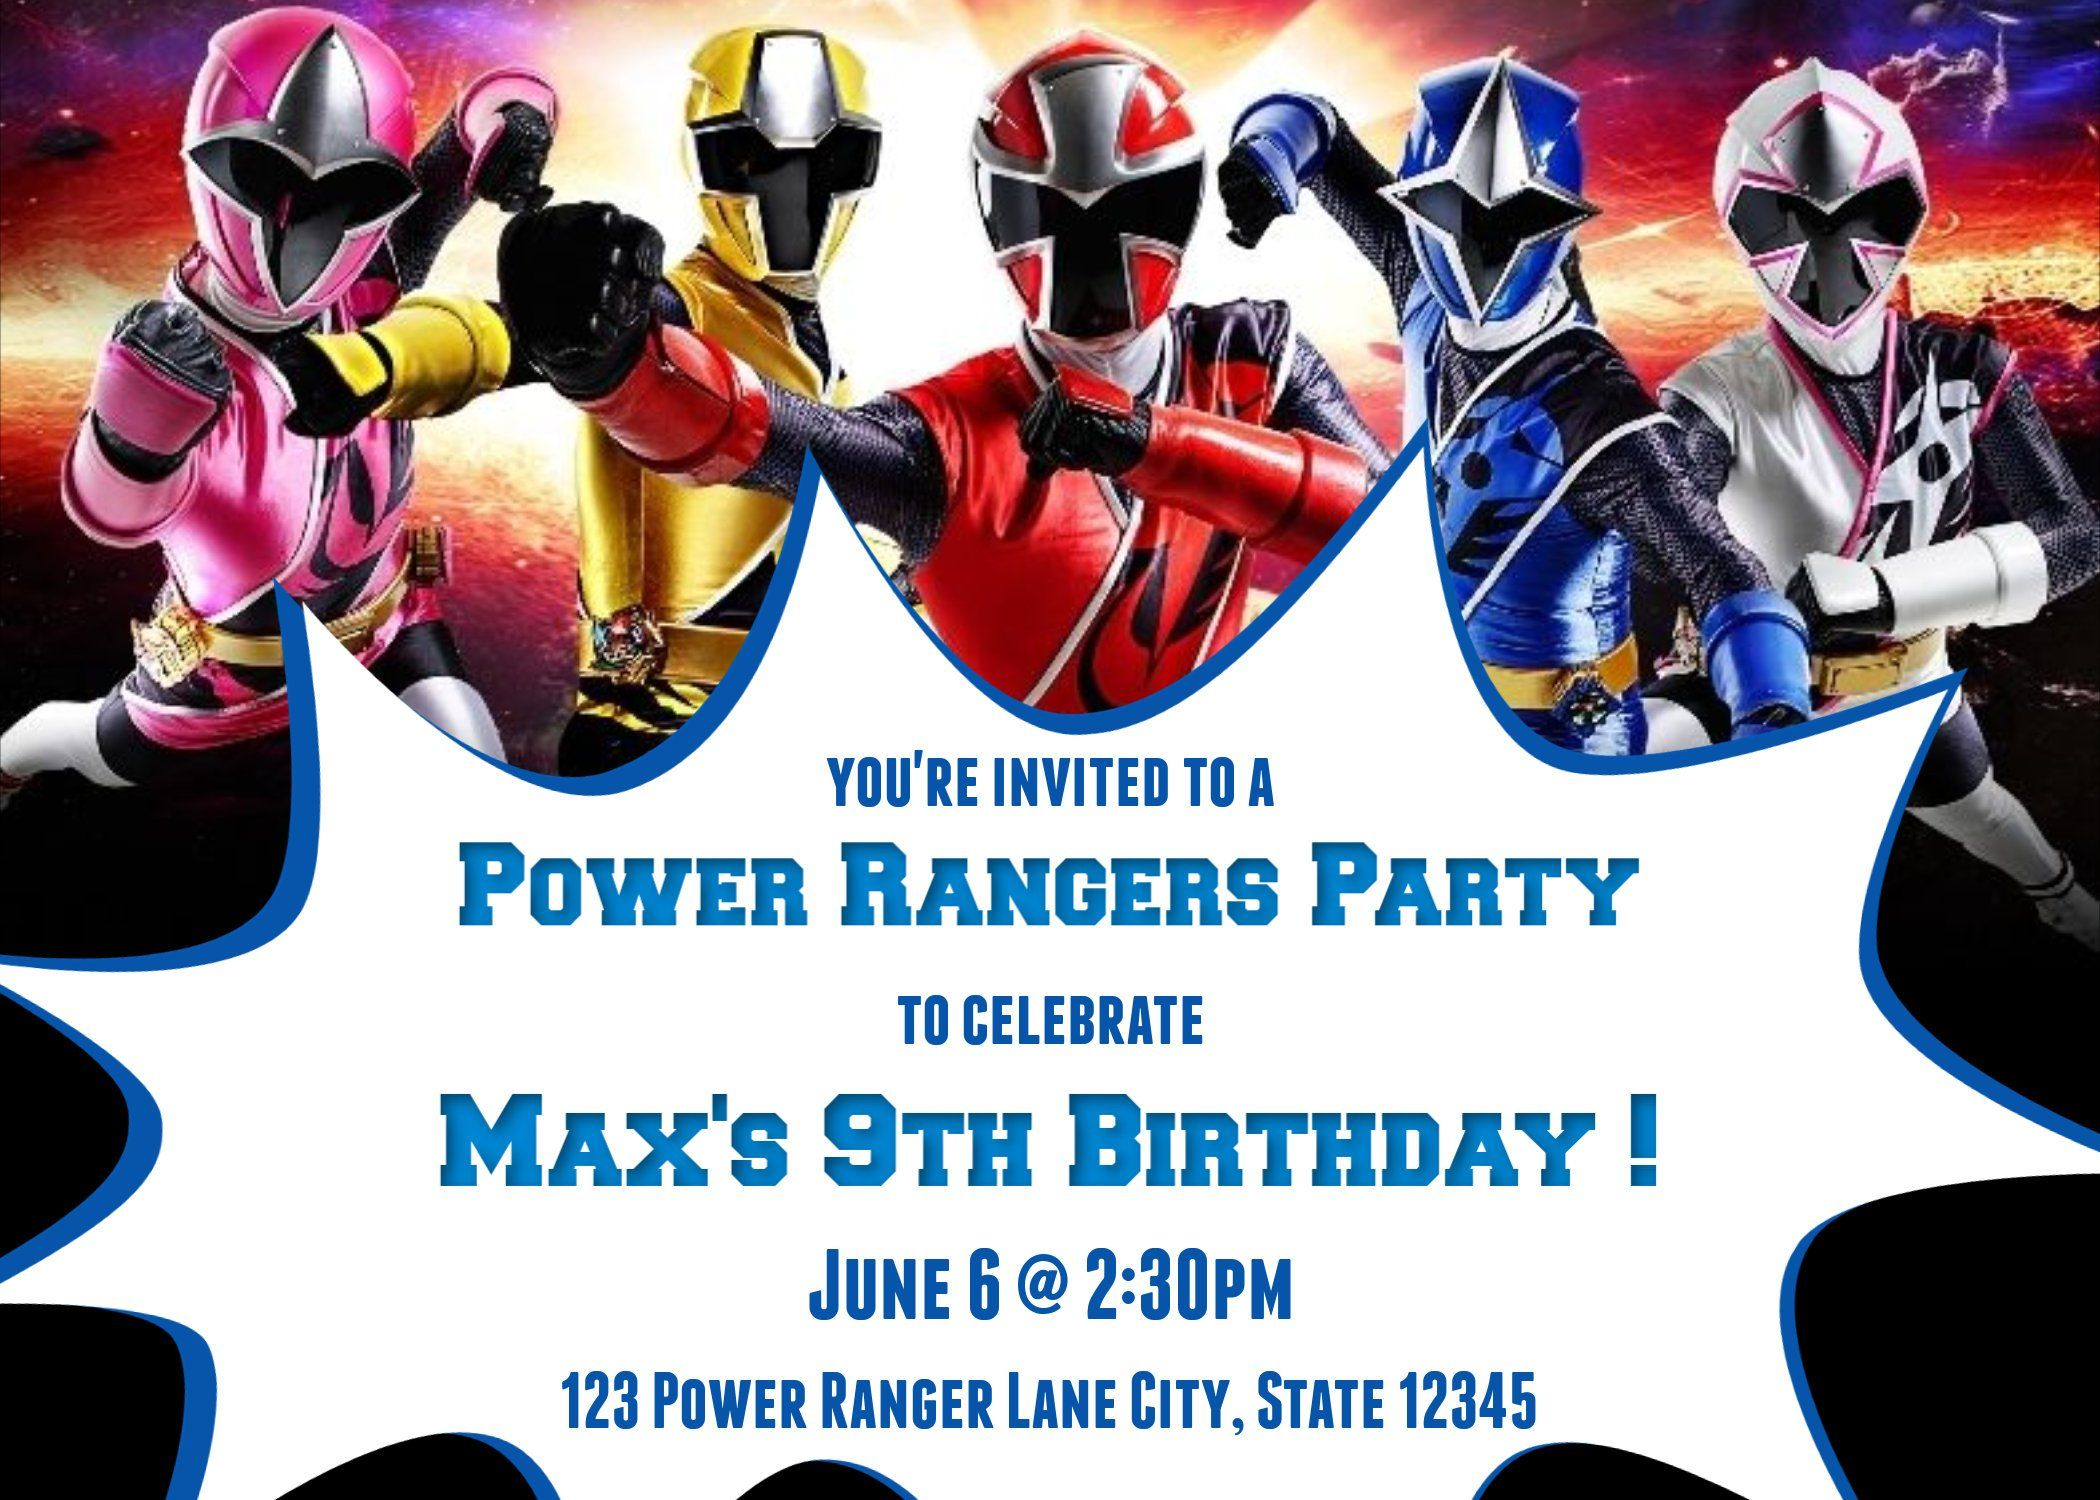 9th Birthday Power Rangers Ninja Steel Birthday Party Invitation Etsy Birthday P Power Ranger Birthday Power Ranger Birthday Party Power Rangers Invitations